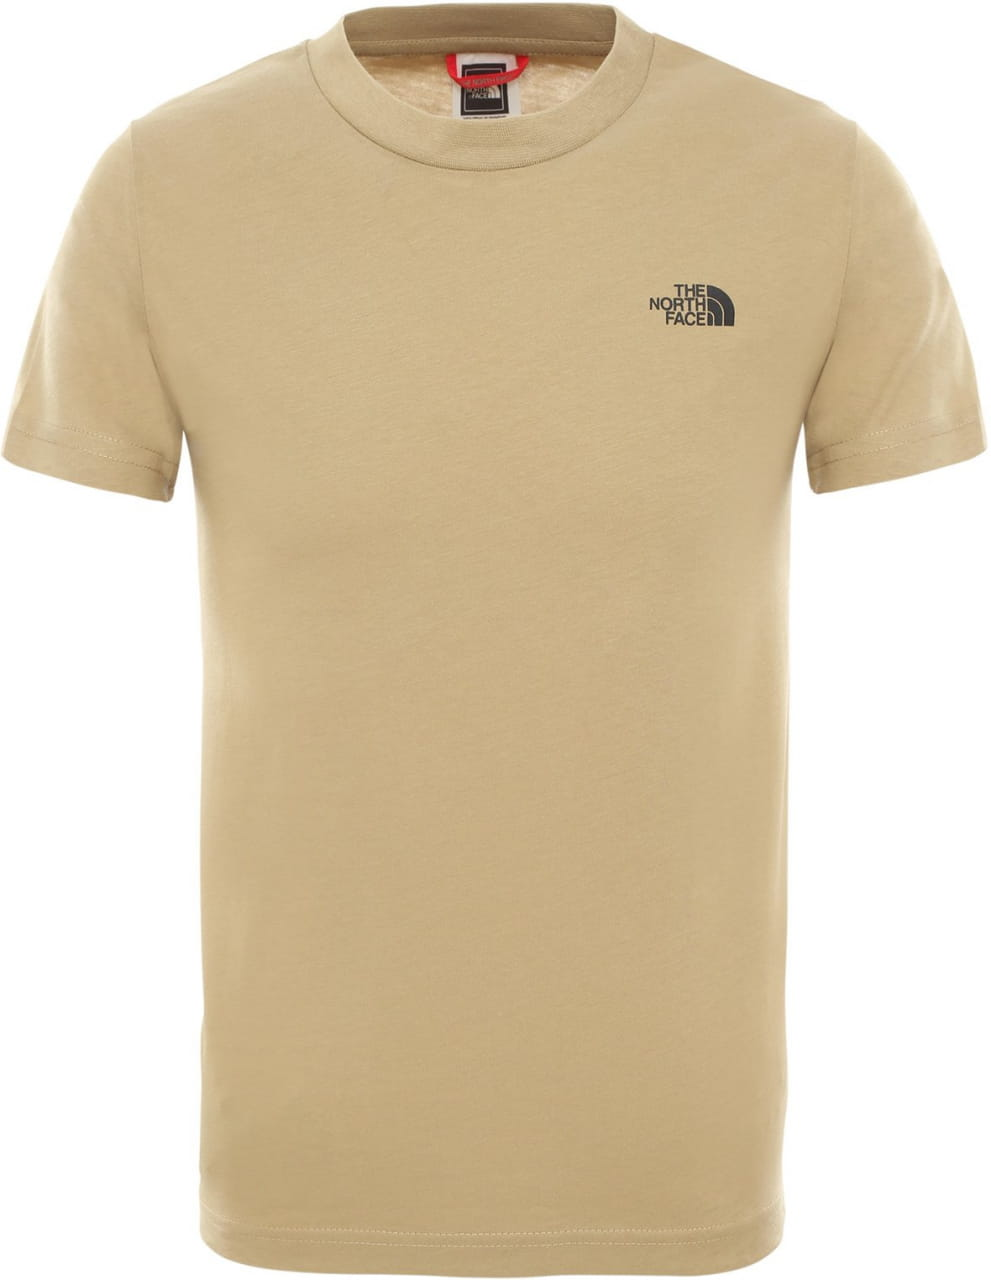 Dětské tričko The North Face Youth Simple Dome T-Shirt